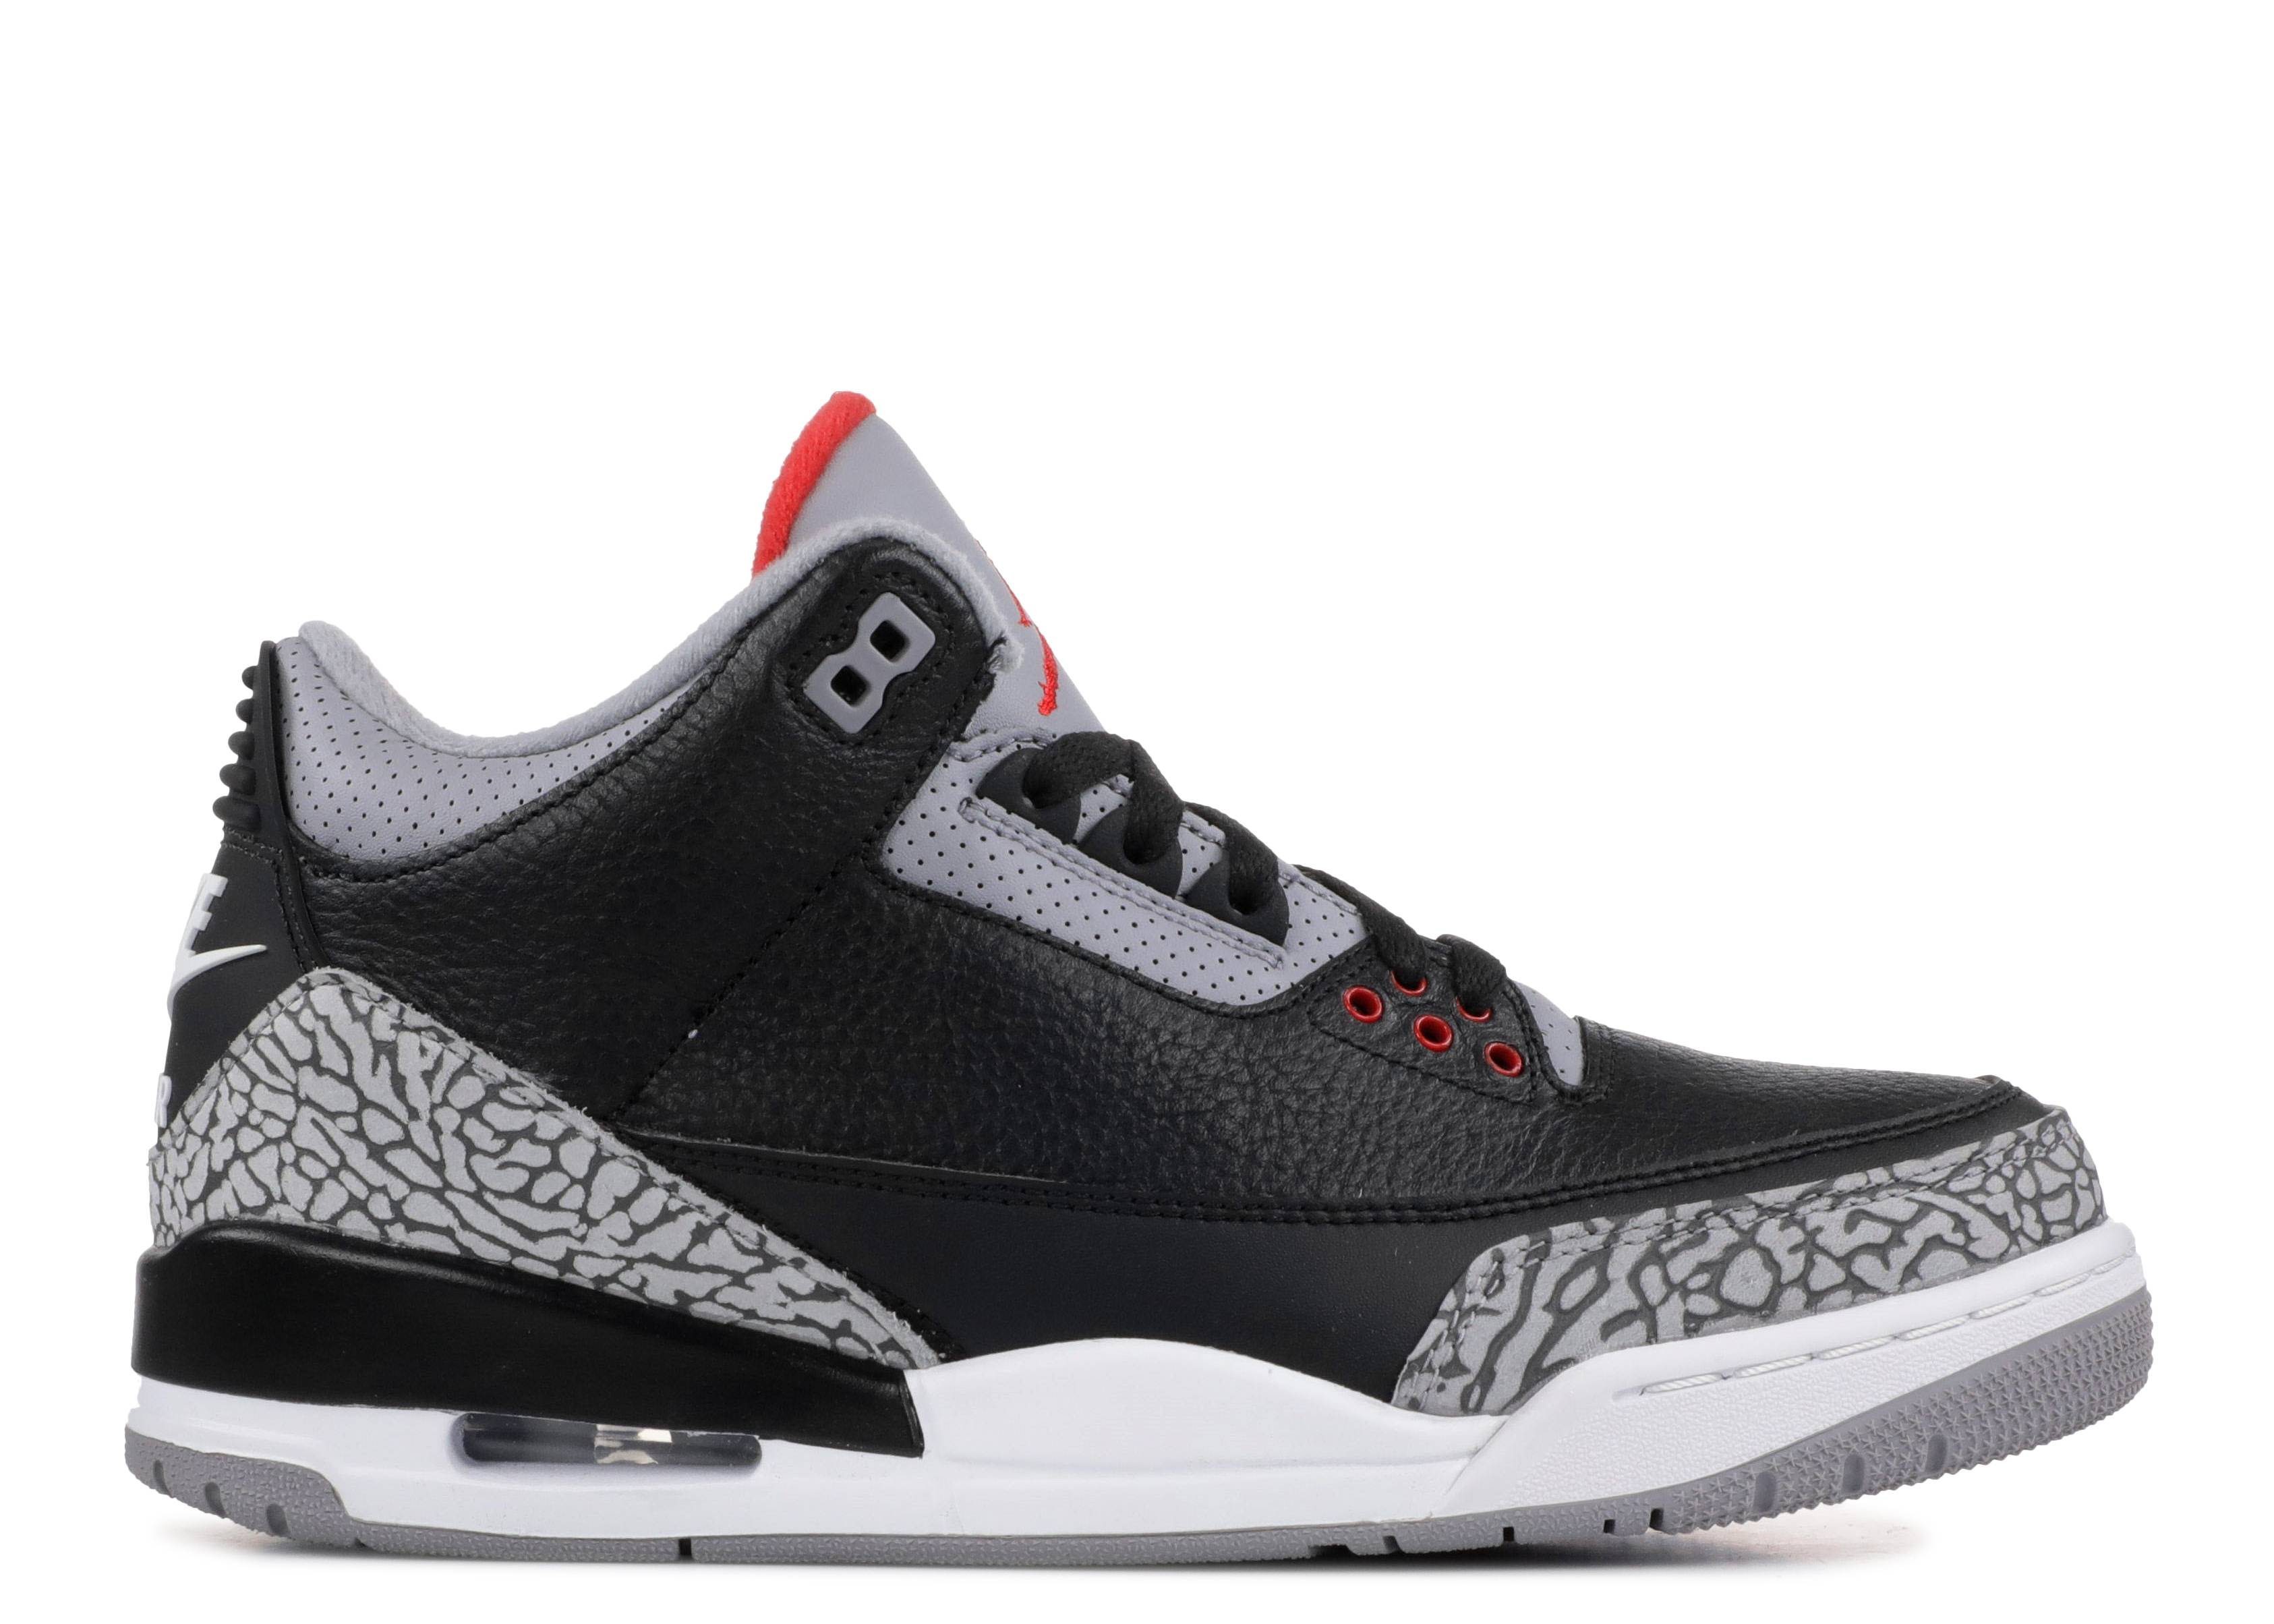 da7dc70be009 Air Jordan 3 Retro Og